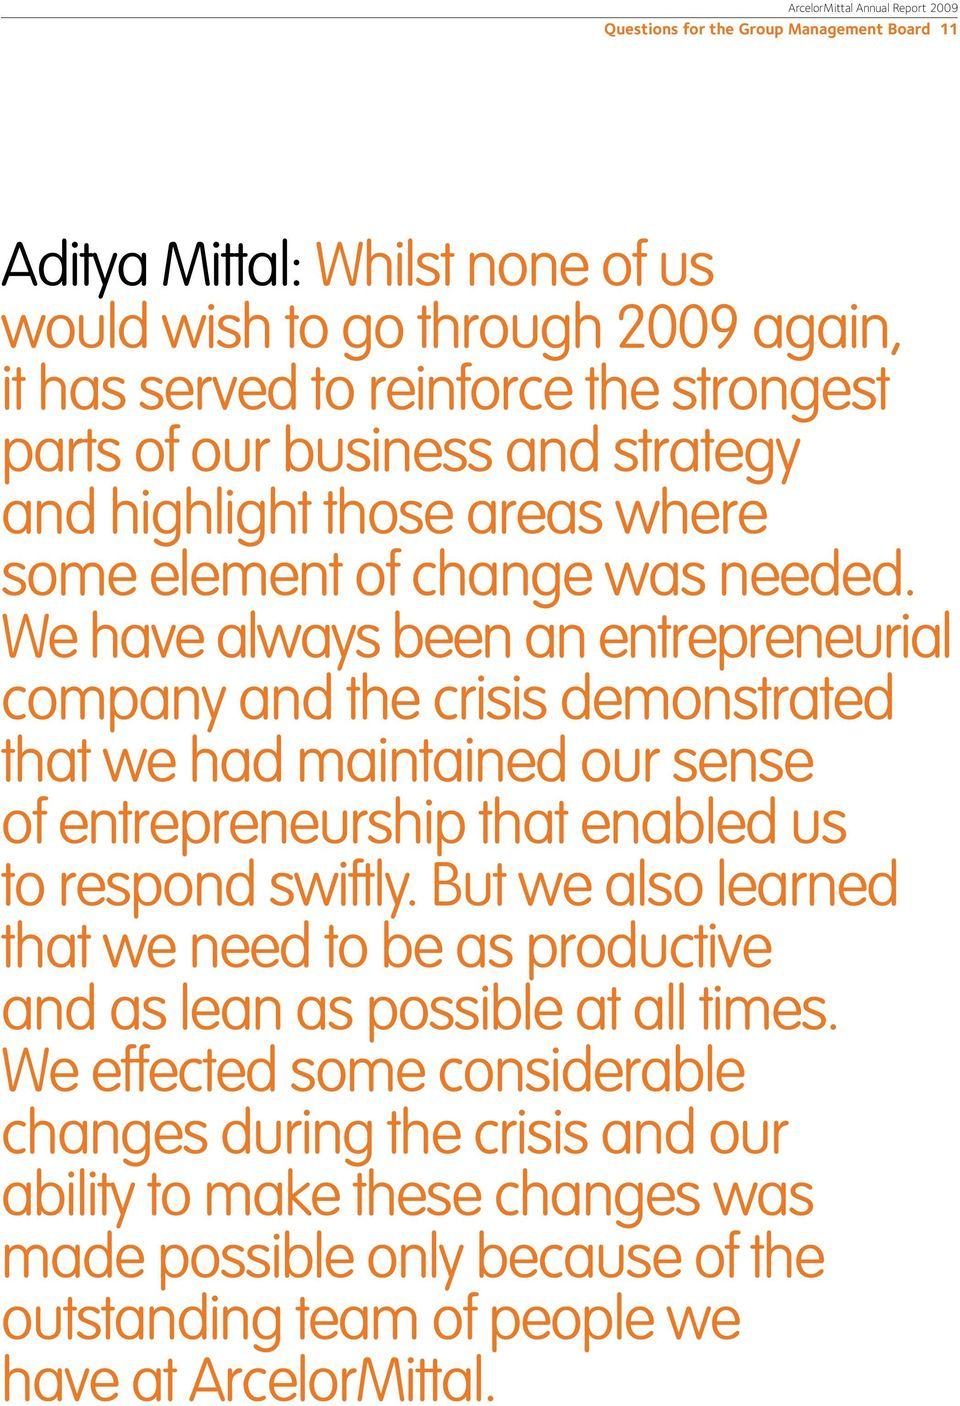 We have always been an entrepreneurial company and the crisis demonstrated that we had maintained our sense of entrepreneurship that enabled us to respond swiftly.